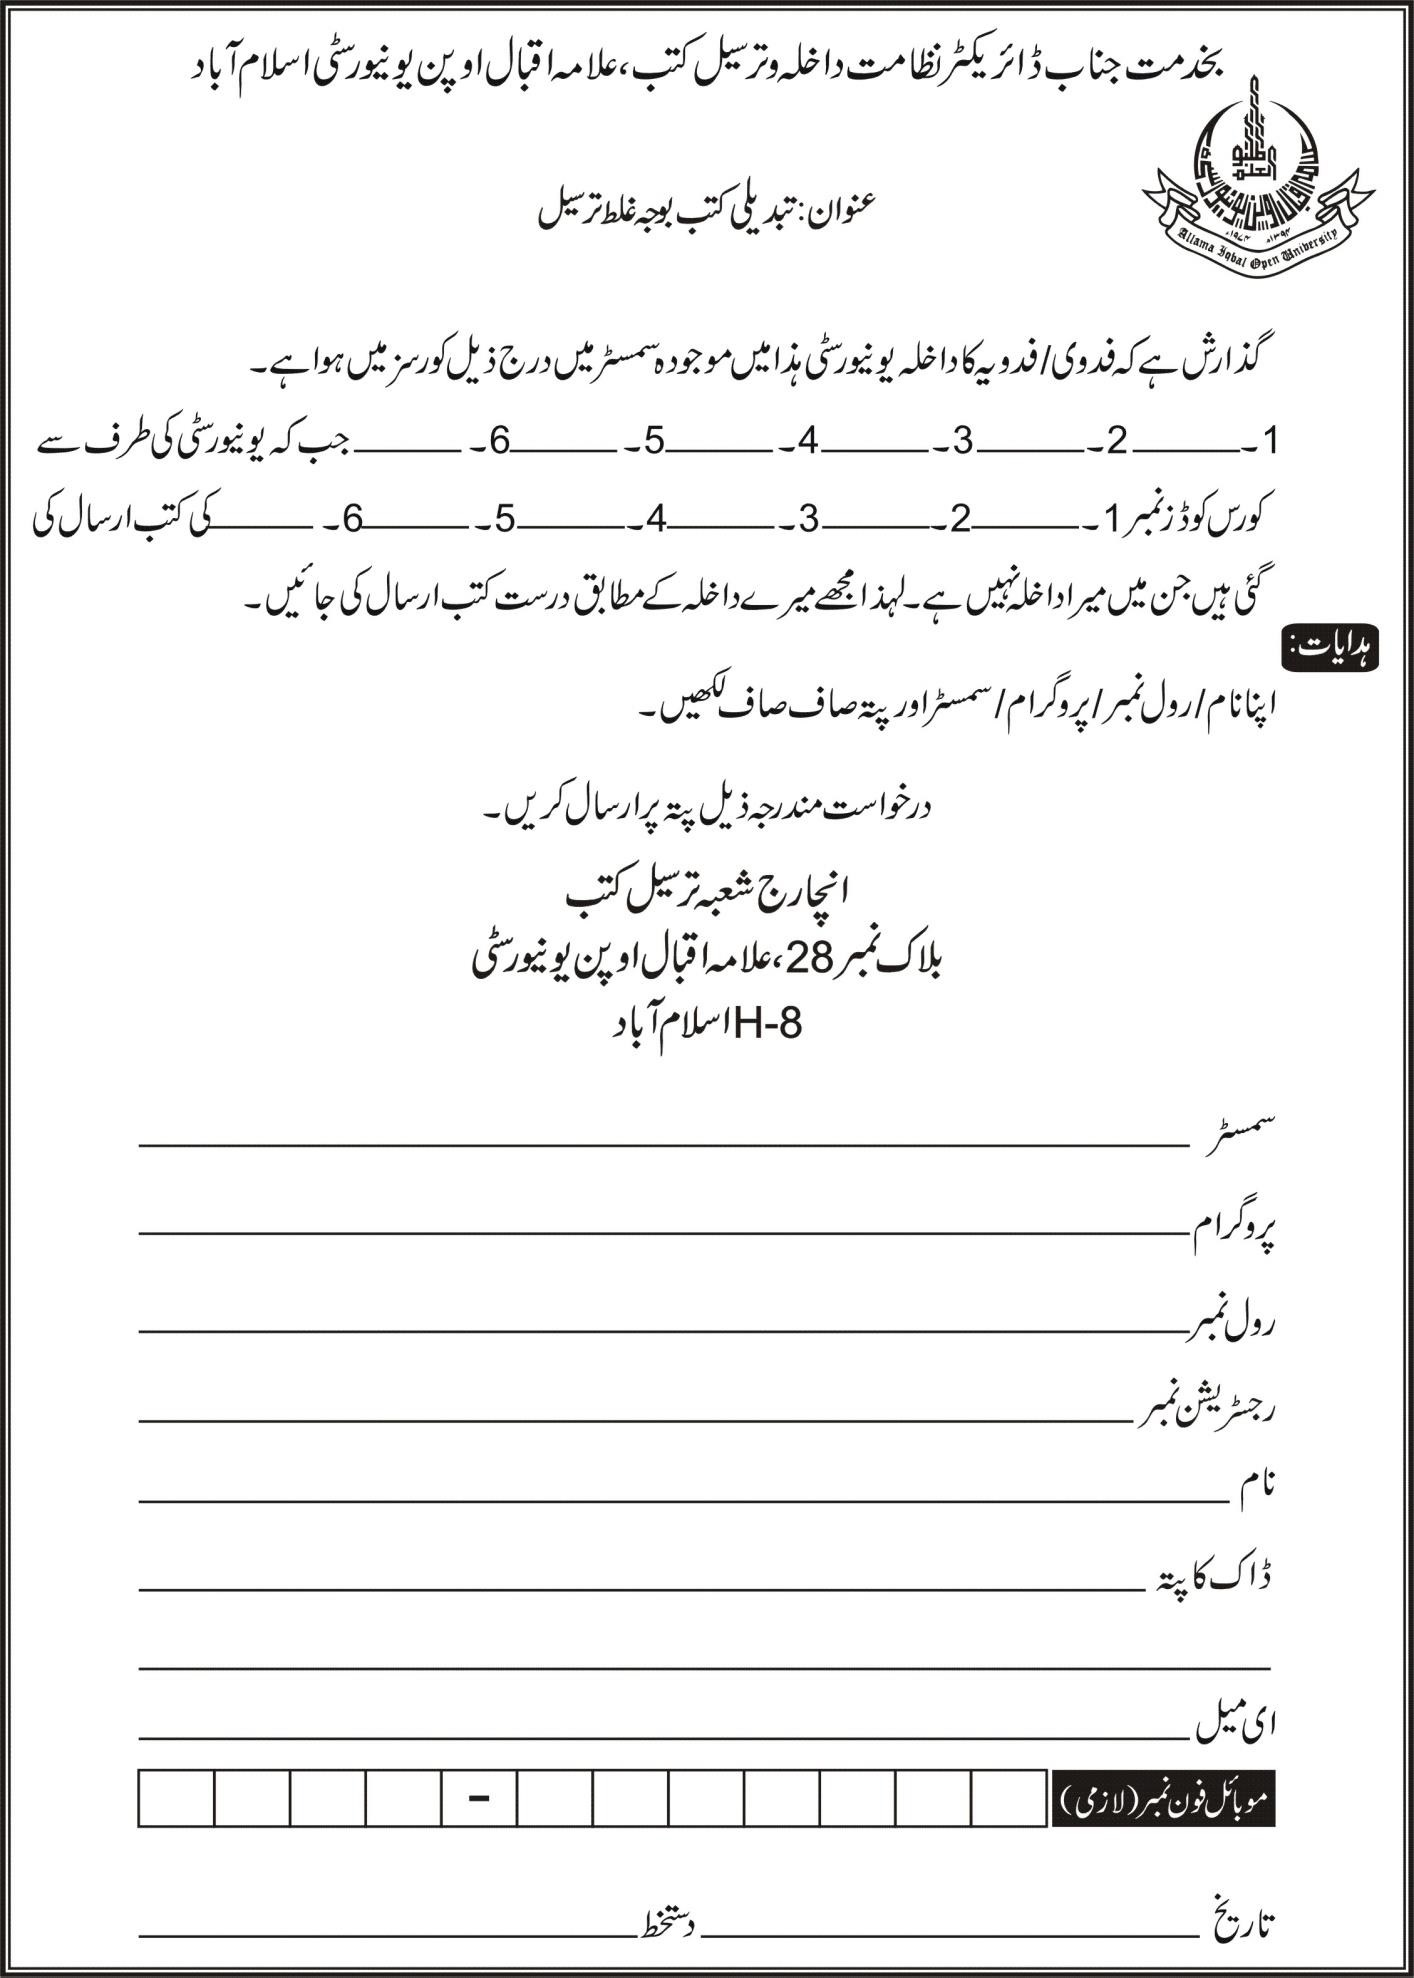 Application form Download to Change Books of AIOU